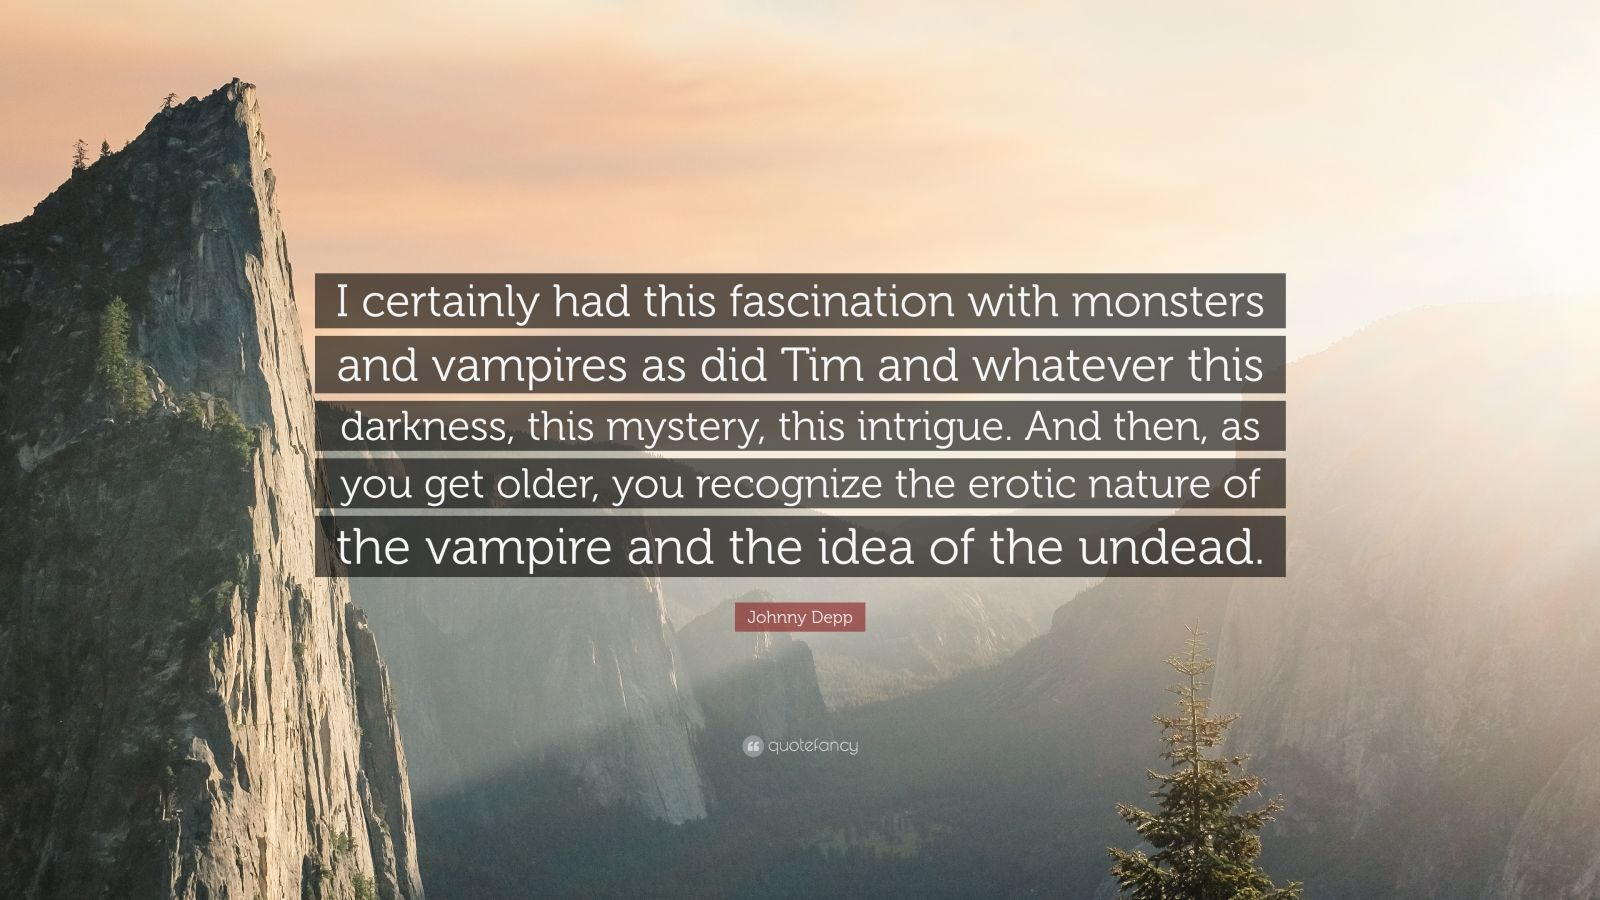 """Johnny Depp Quote: """"I certainly had this fascination with monsters and vampires as did Tim and whatever this darkness, this mystery, this intrigue. And then, as you get older, you recognize the erotic nature of the vampire and the idea of the undead."""""""